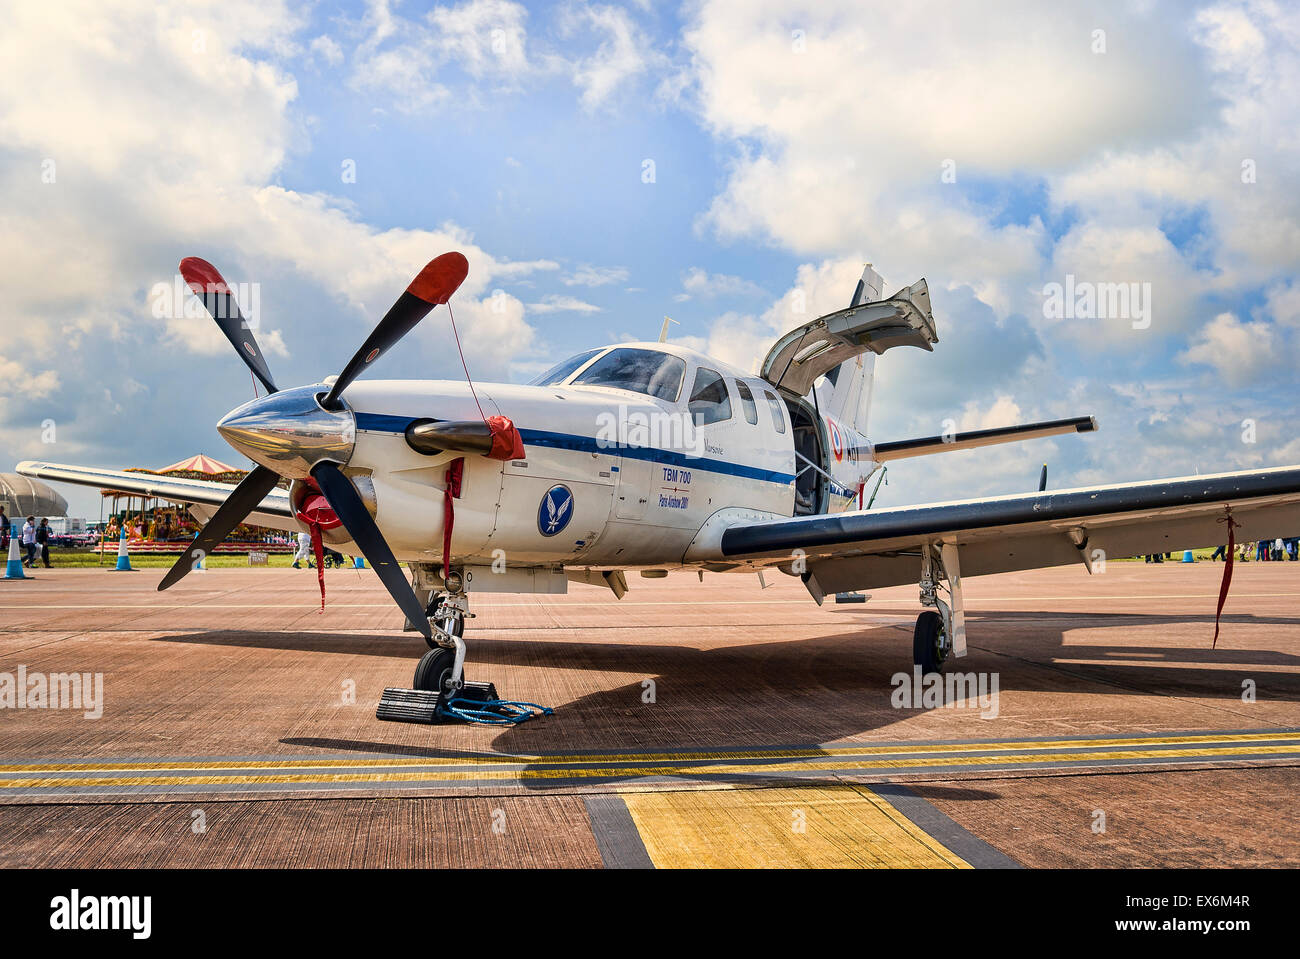 Single engine Daher-Socata aircraft - Stock Image